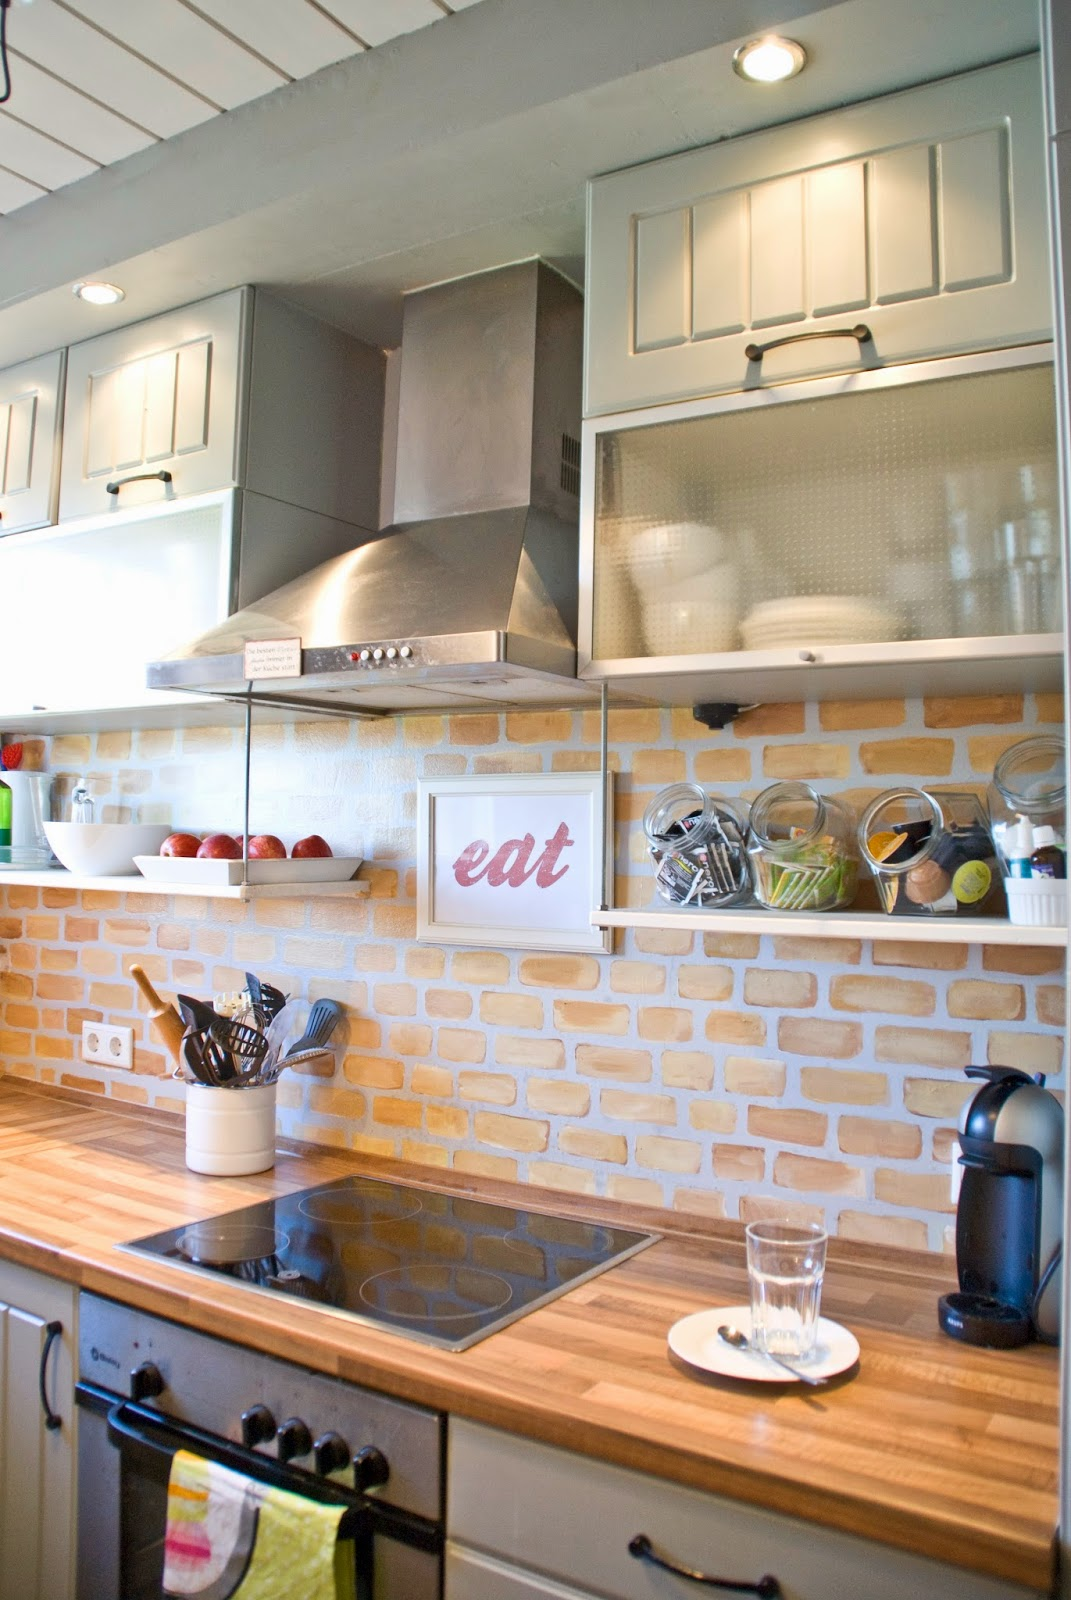 Kitchen Renovation Backsplash remodelaholic | tiny kitchen renovation with faux painted brick